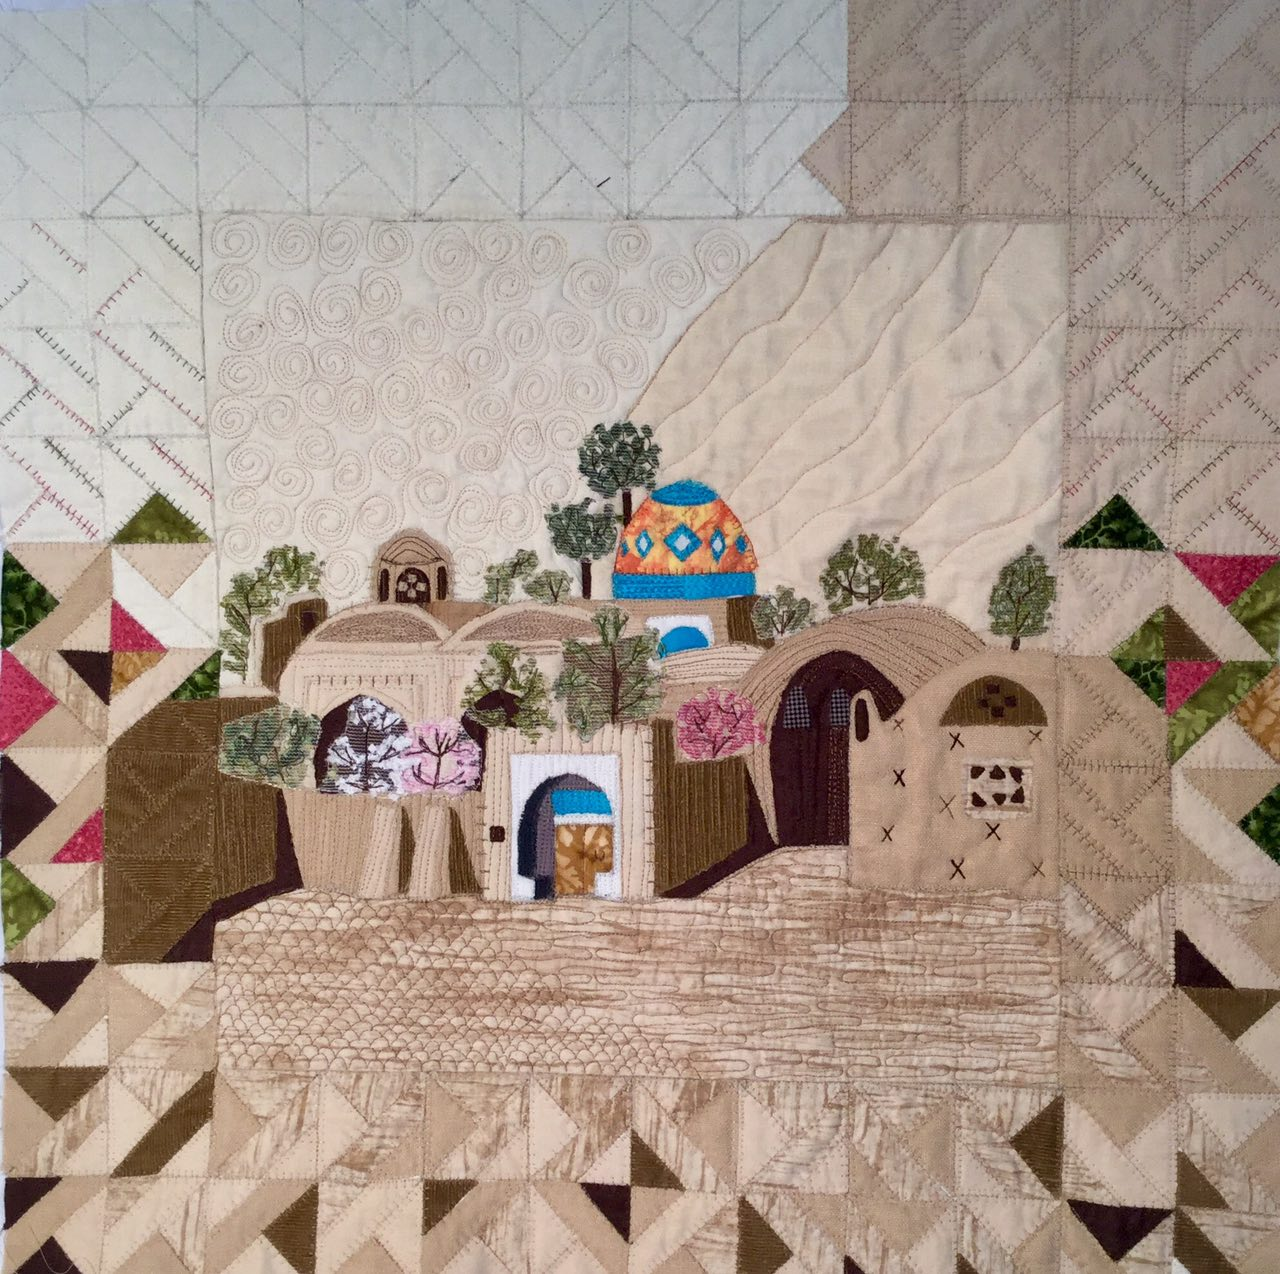 Work by Narges Hosseinzadegan  (Patchiran Imagery Classes 2017)